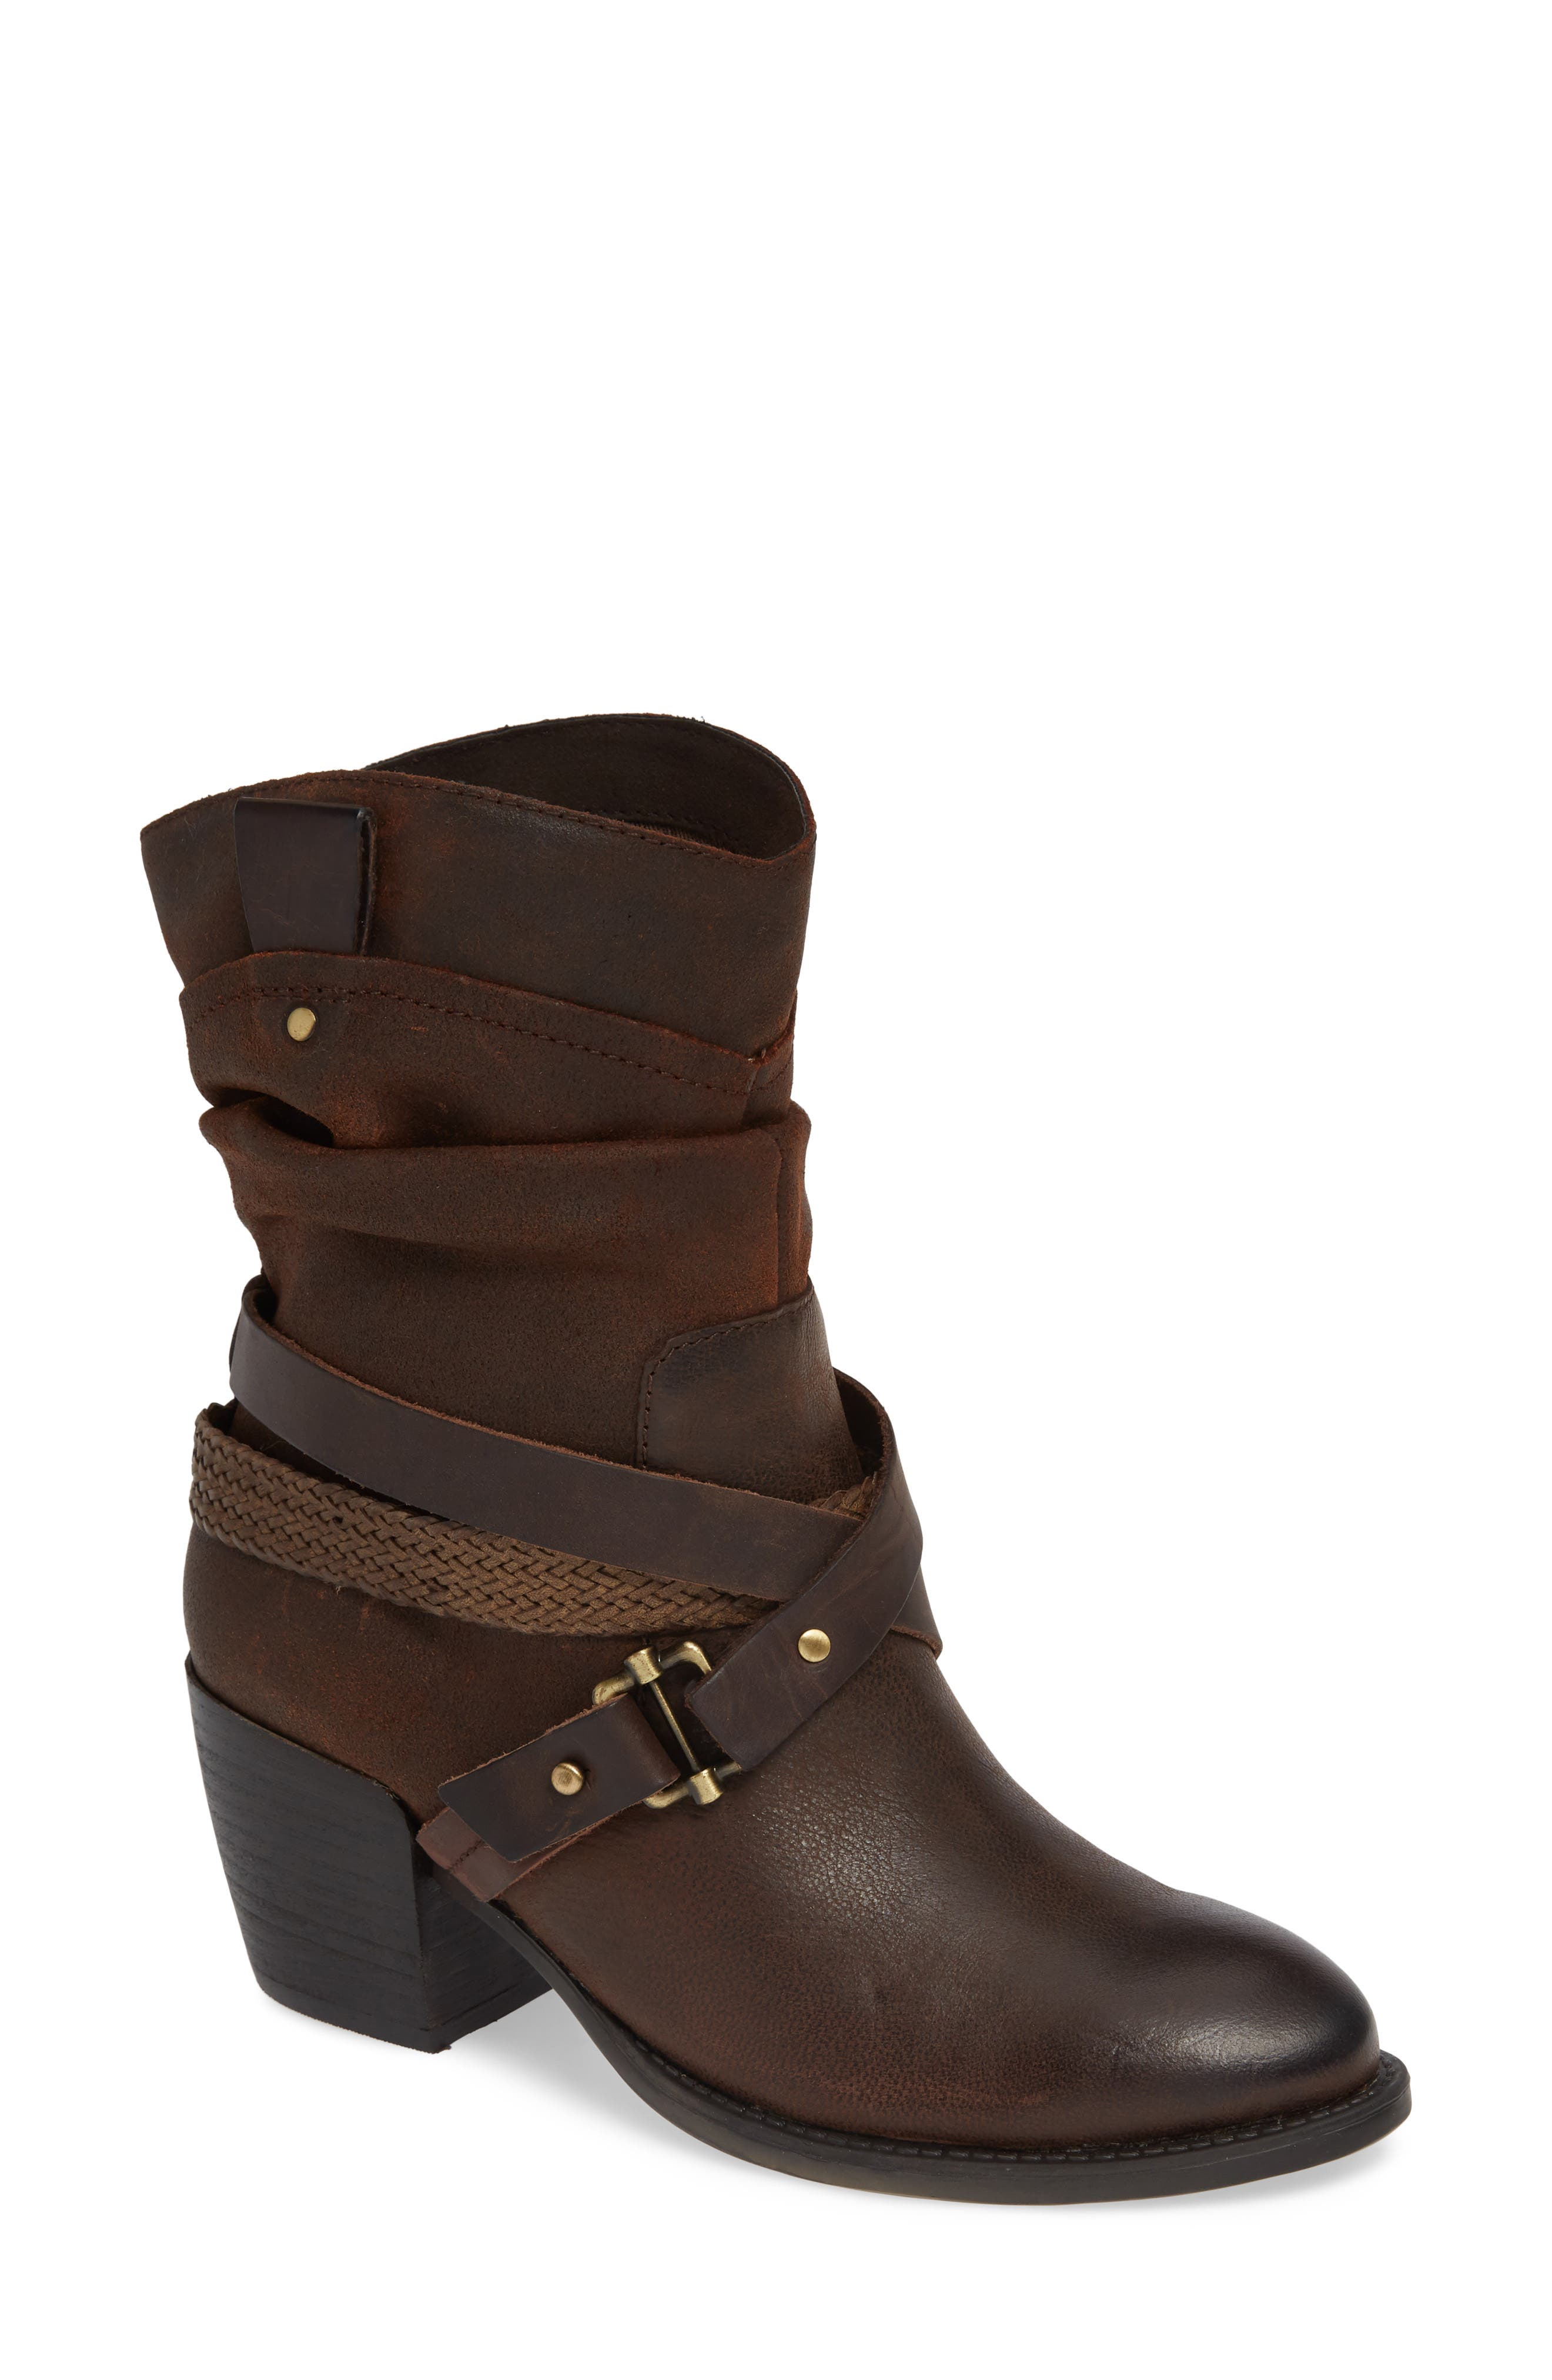 Otbt Hay Ride Bootie- Brown